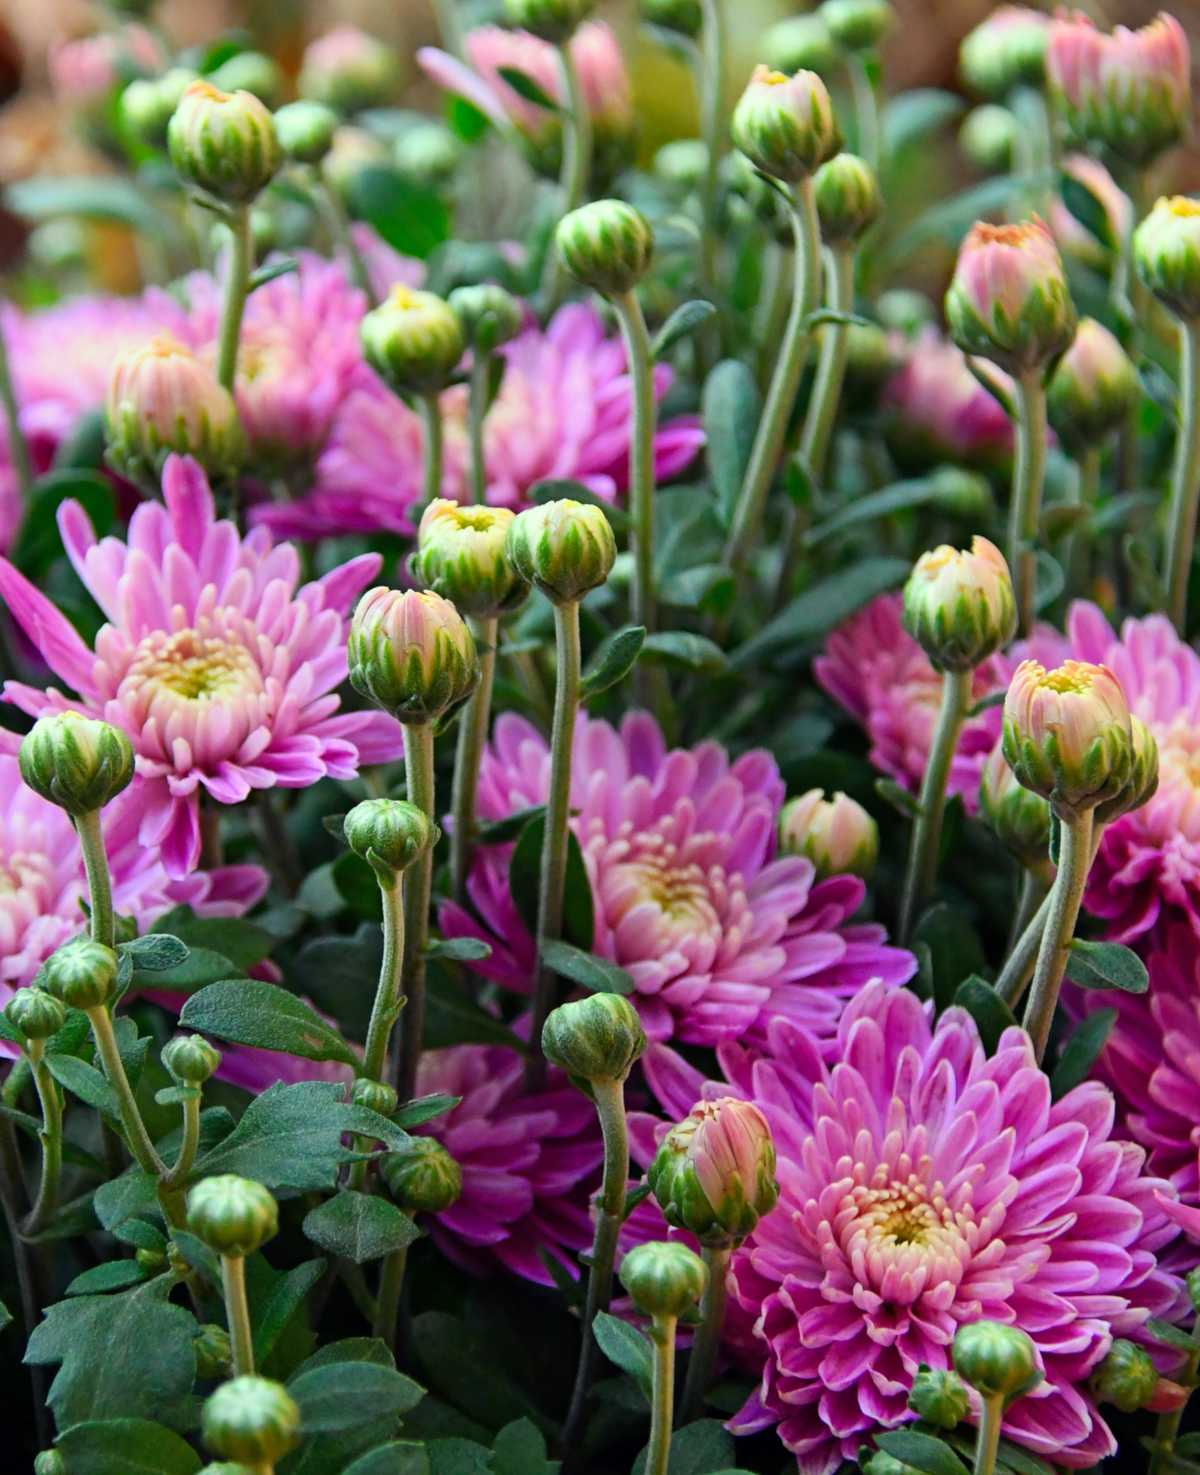 Chrysanthemum, a plant that is simply beautiful